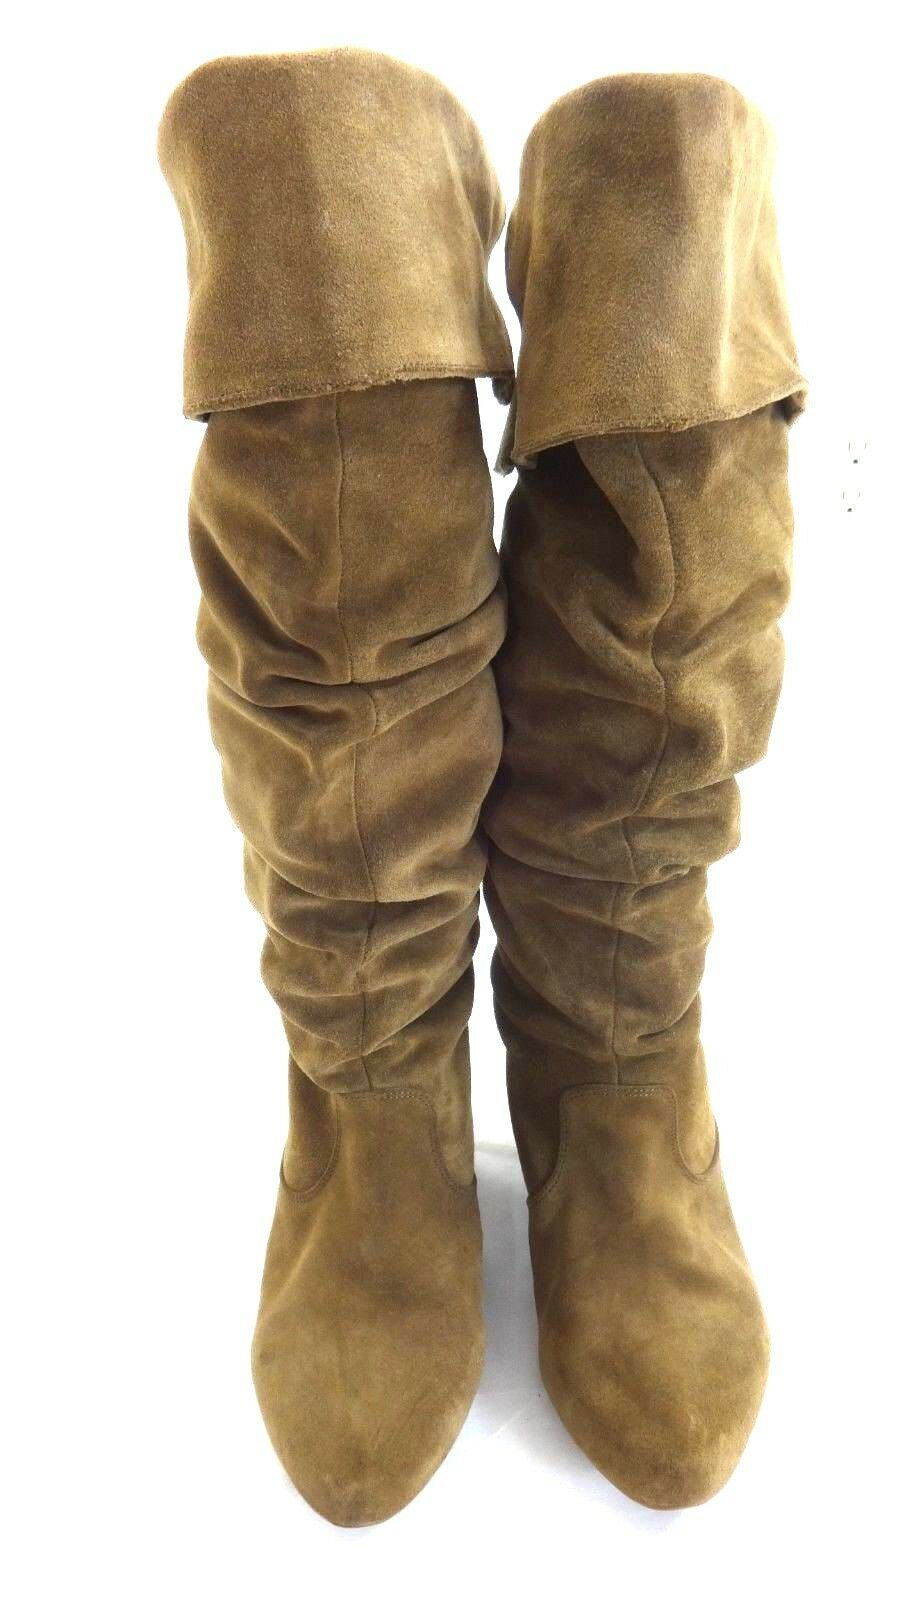 JESSICA SIMPSON WOMEN'S BROWN SUEDE LEATHER PULL ON BOOTS SIZE 5M